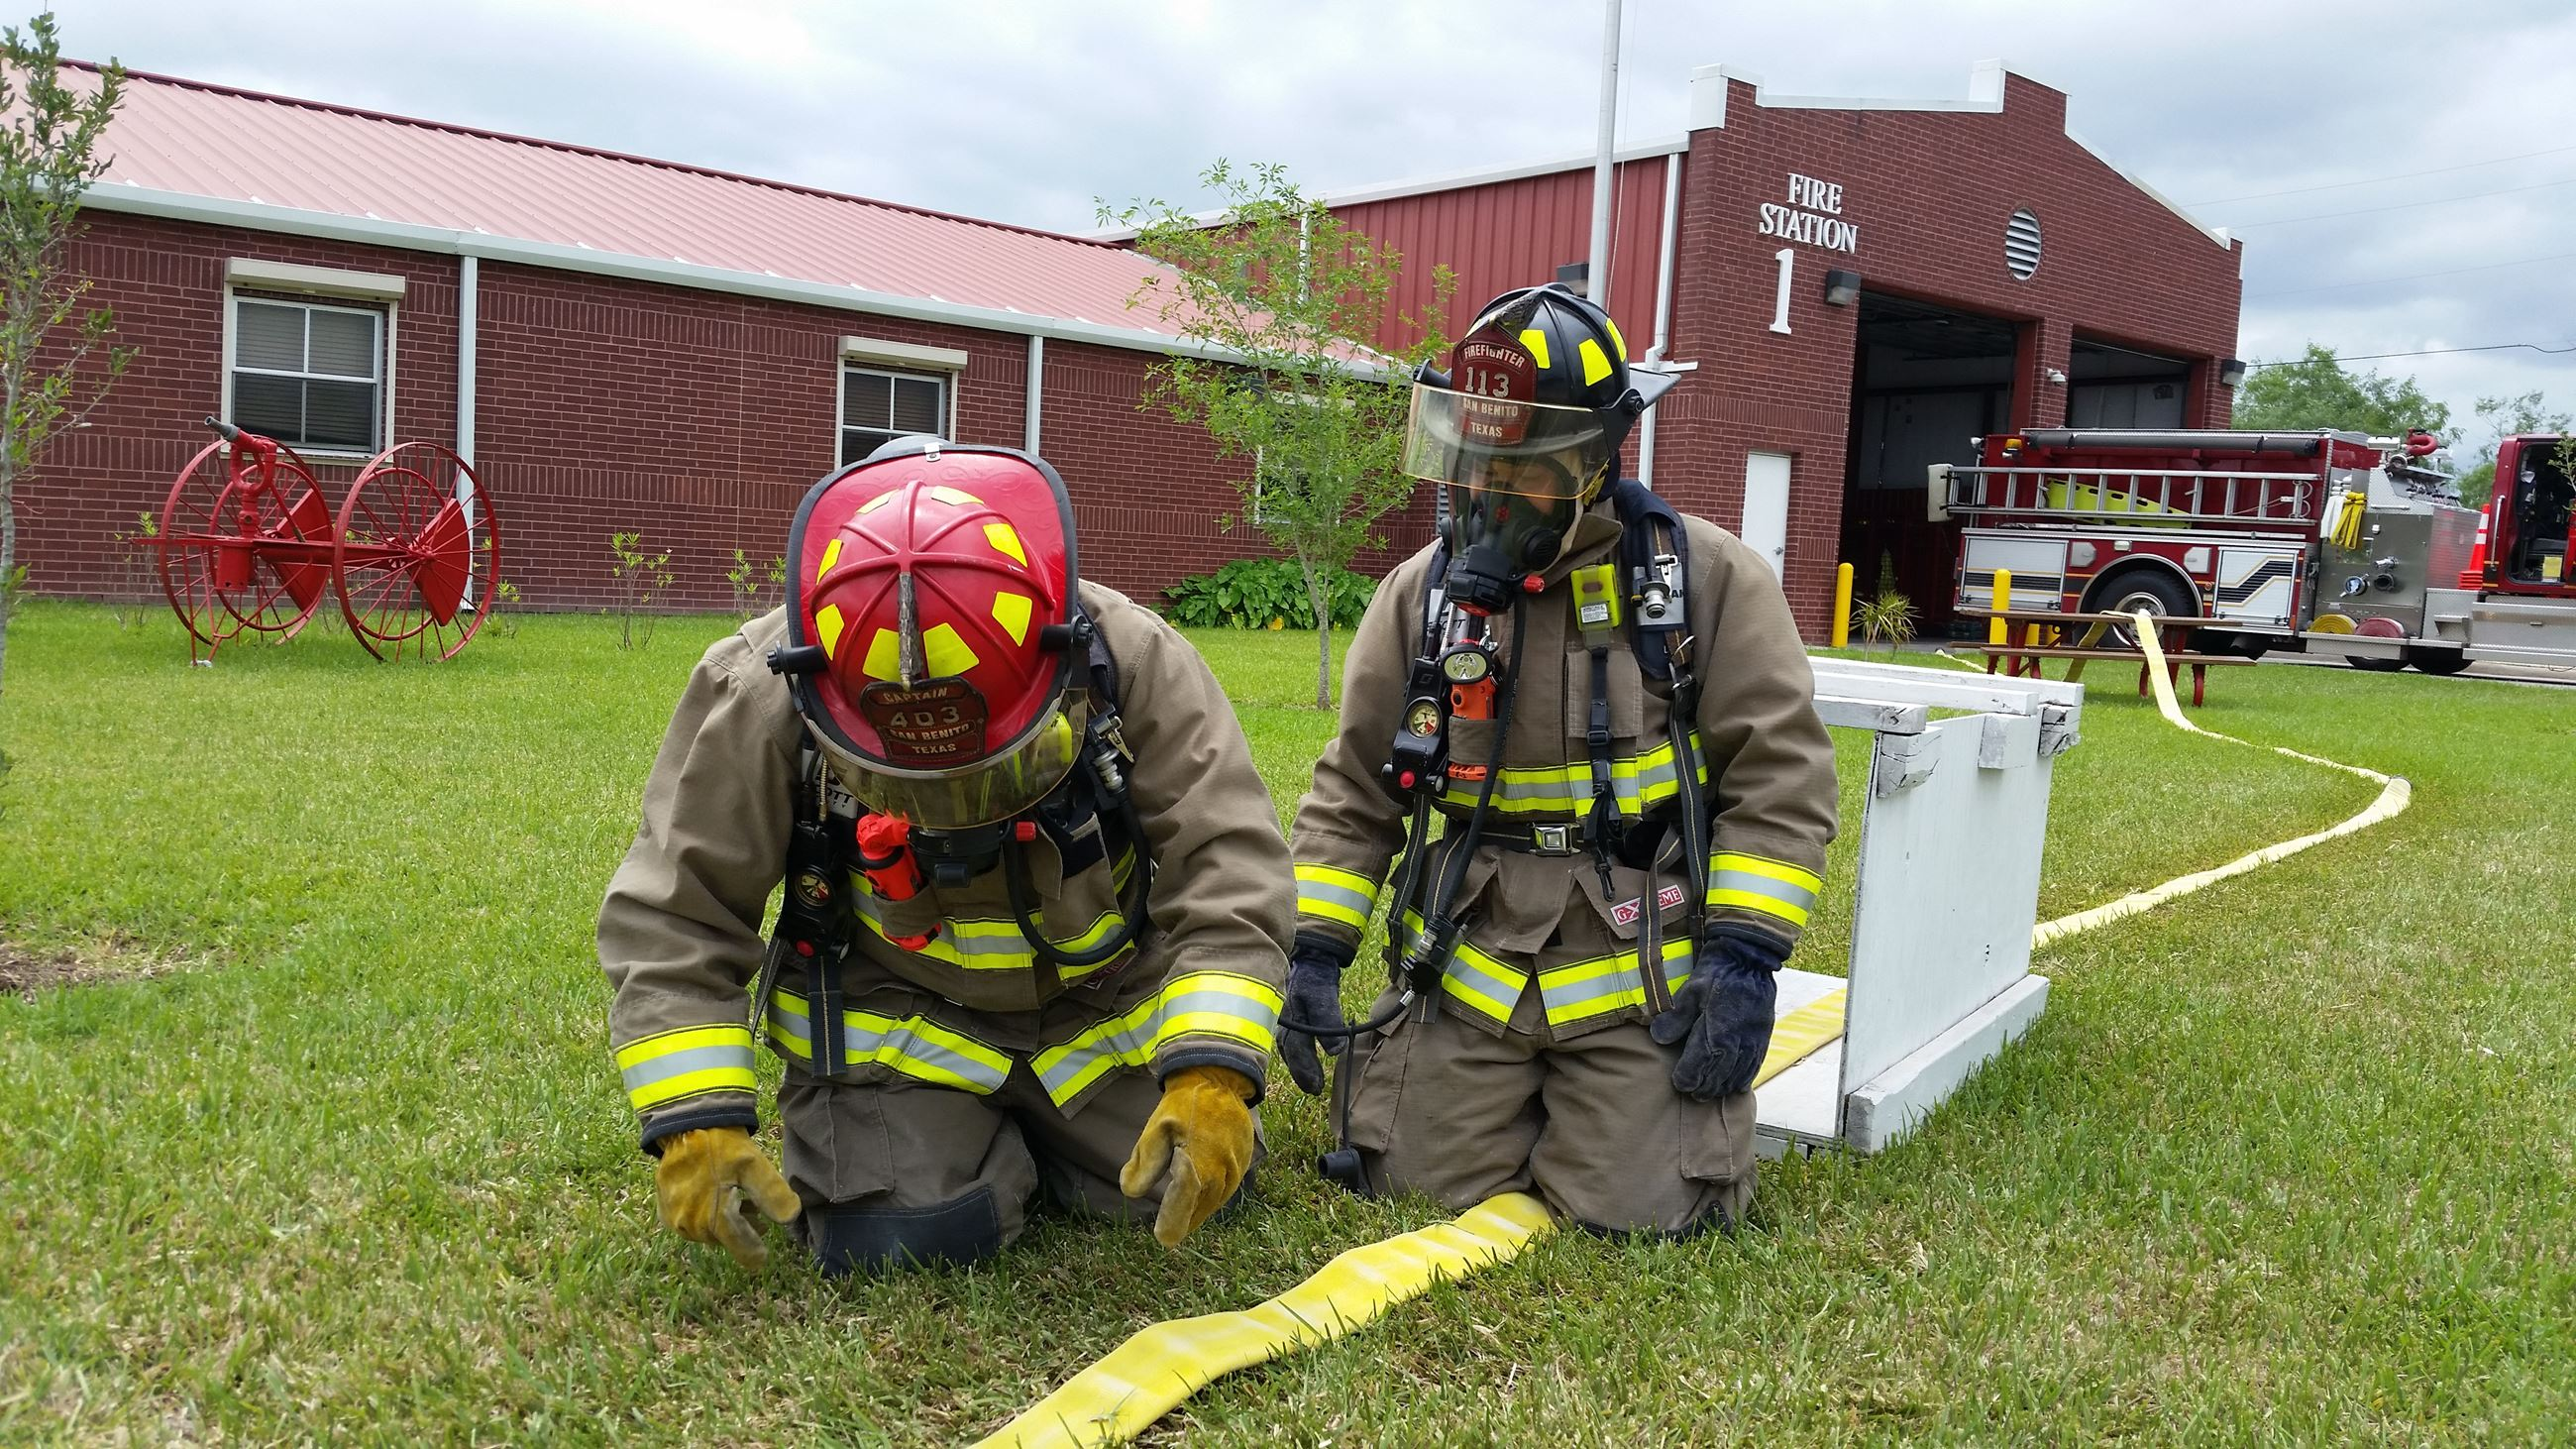 Firefighters kneel on the grass with equipment outside a fire station